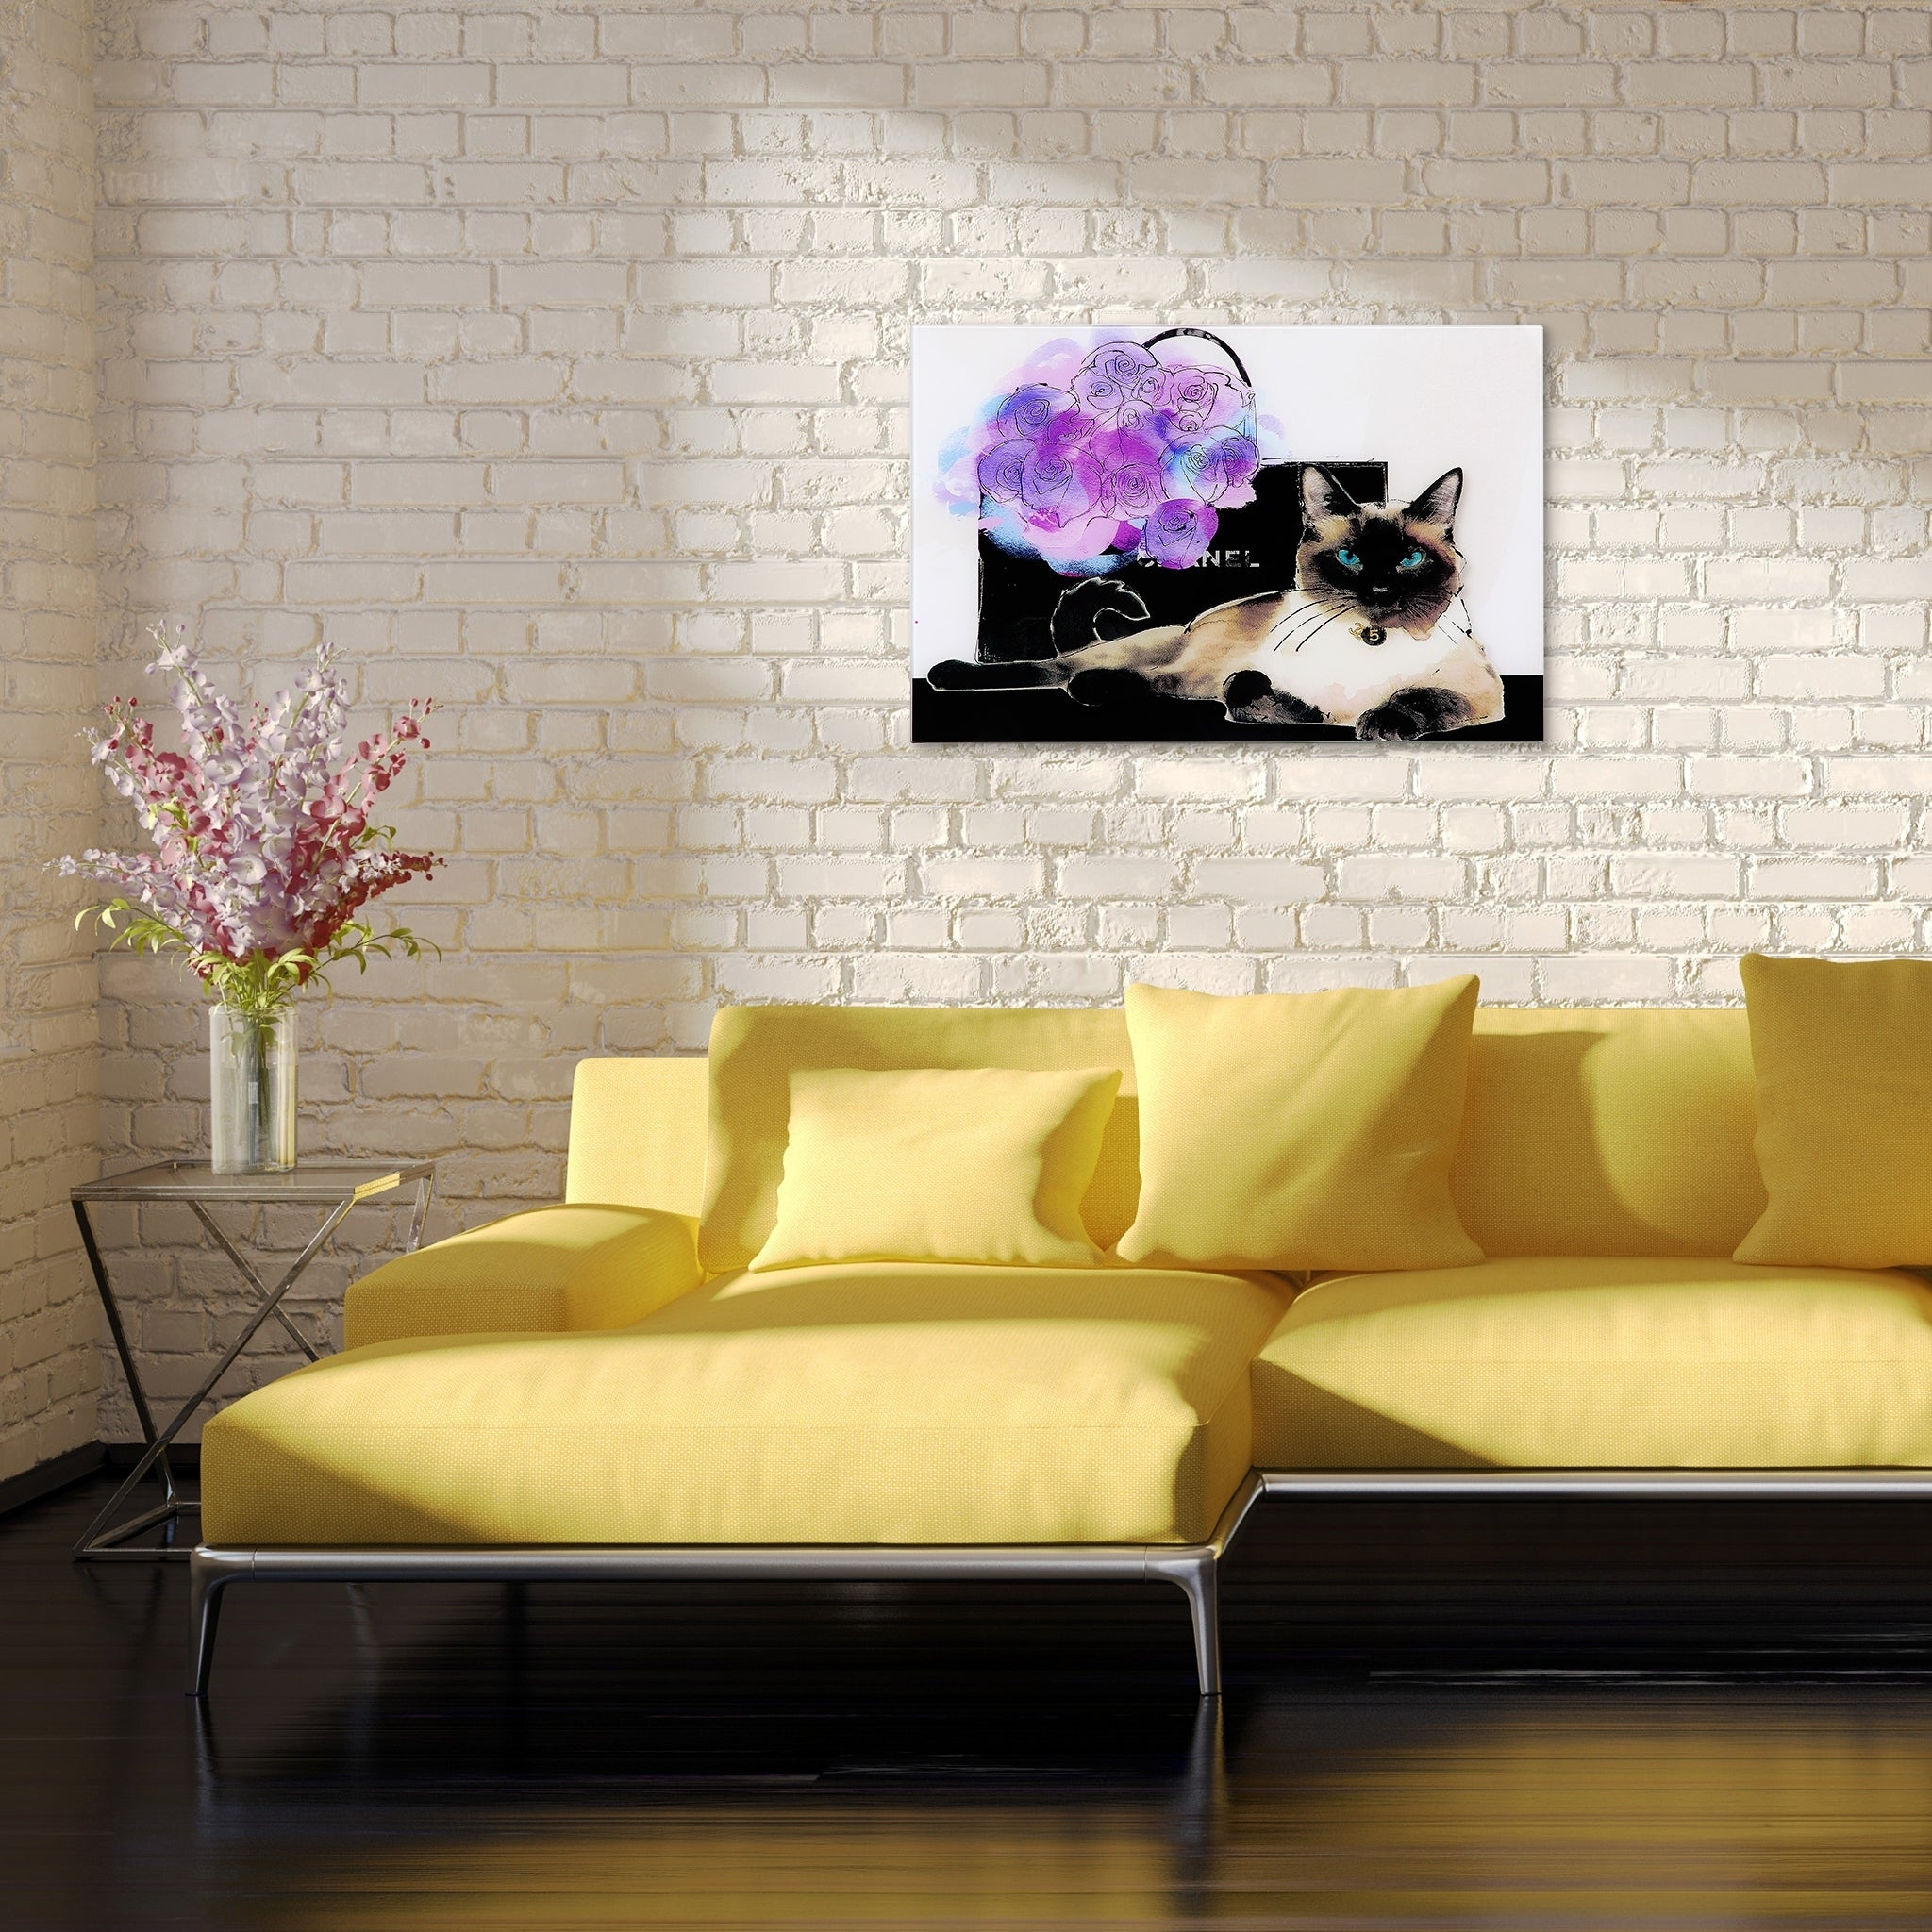 Comfortable Tranquil Wall Art Pictures Inspiration - The Wall Art ...